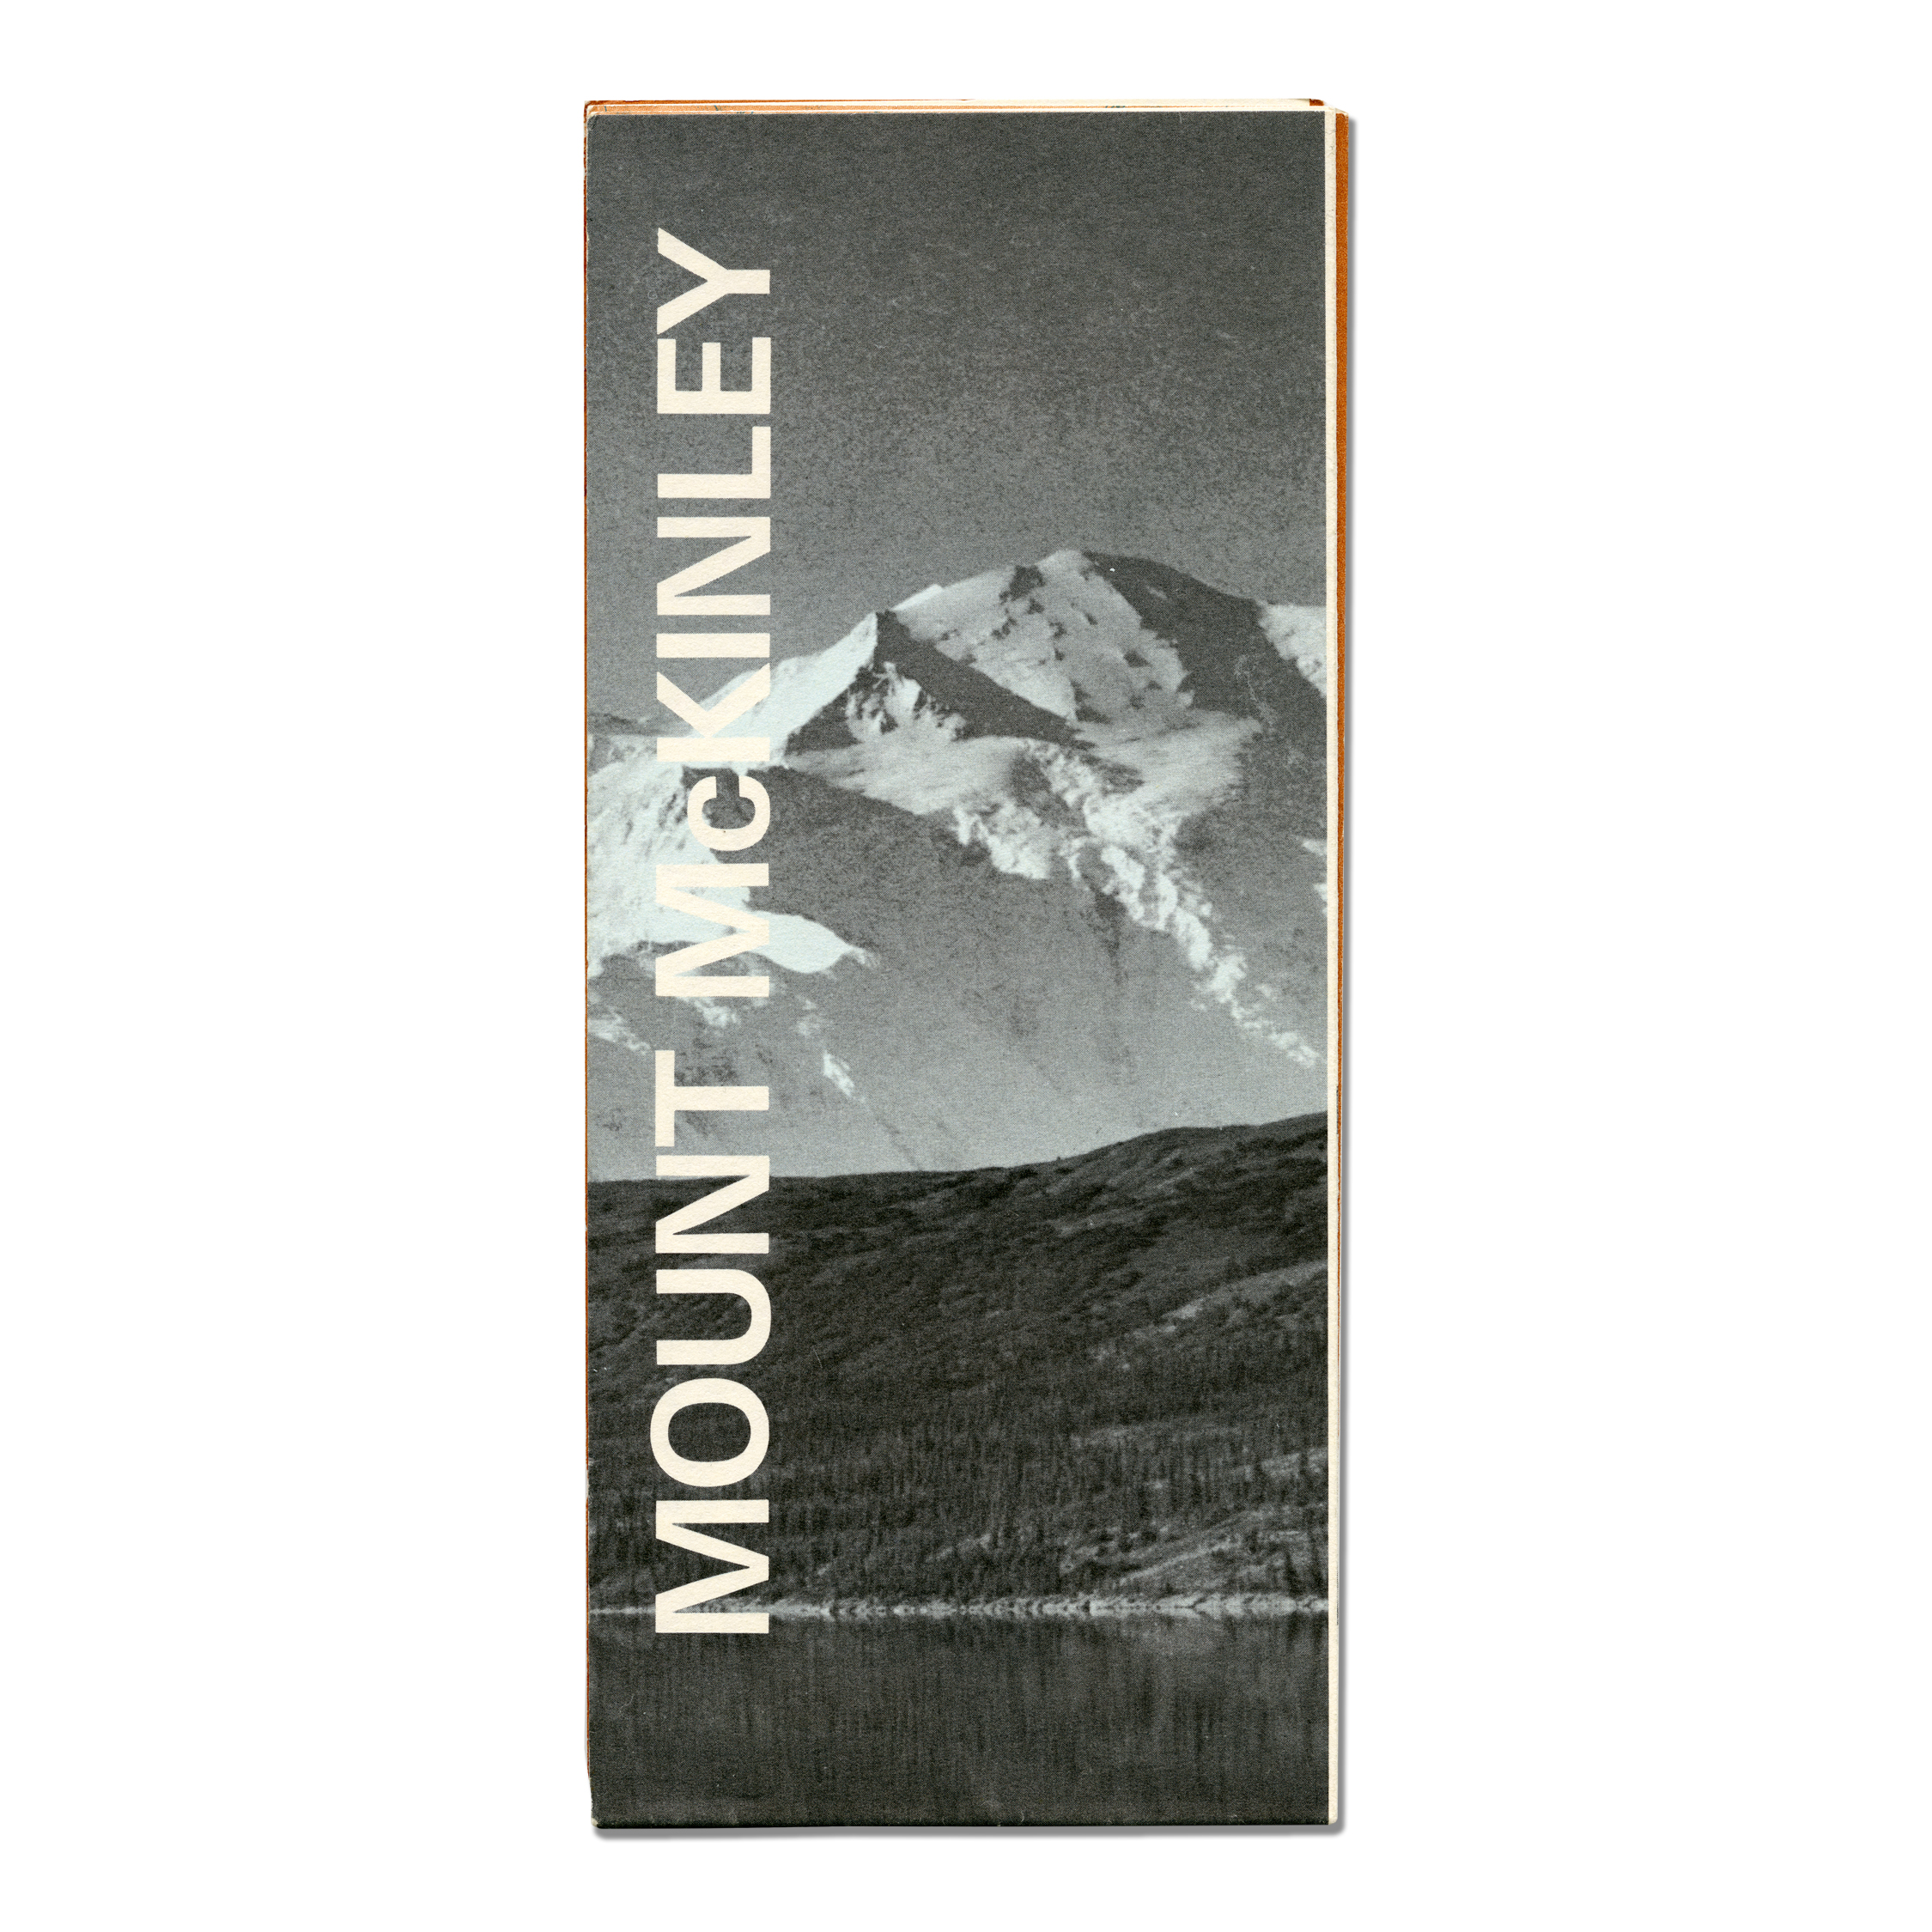 1974_mount_mcKinley_national_park_brochure.jpg